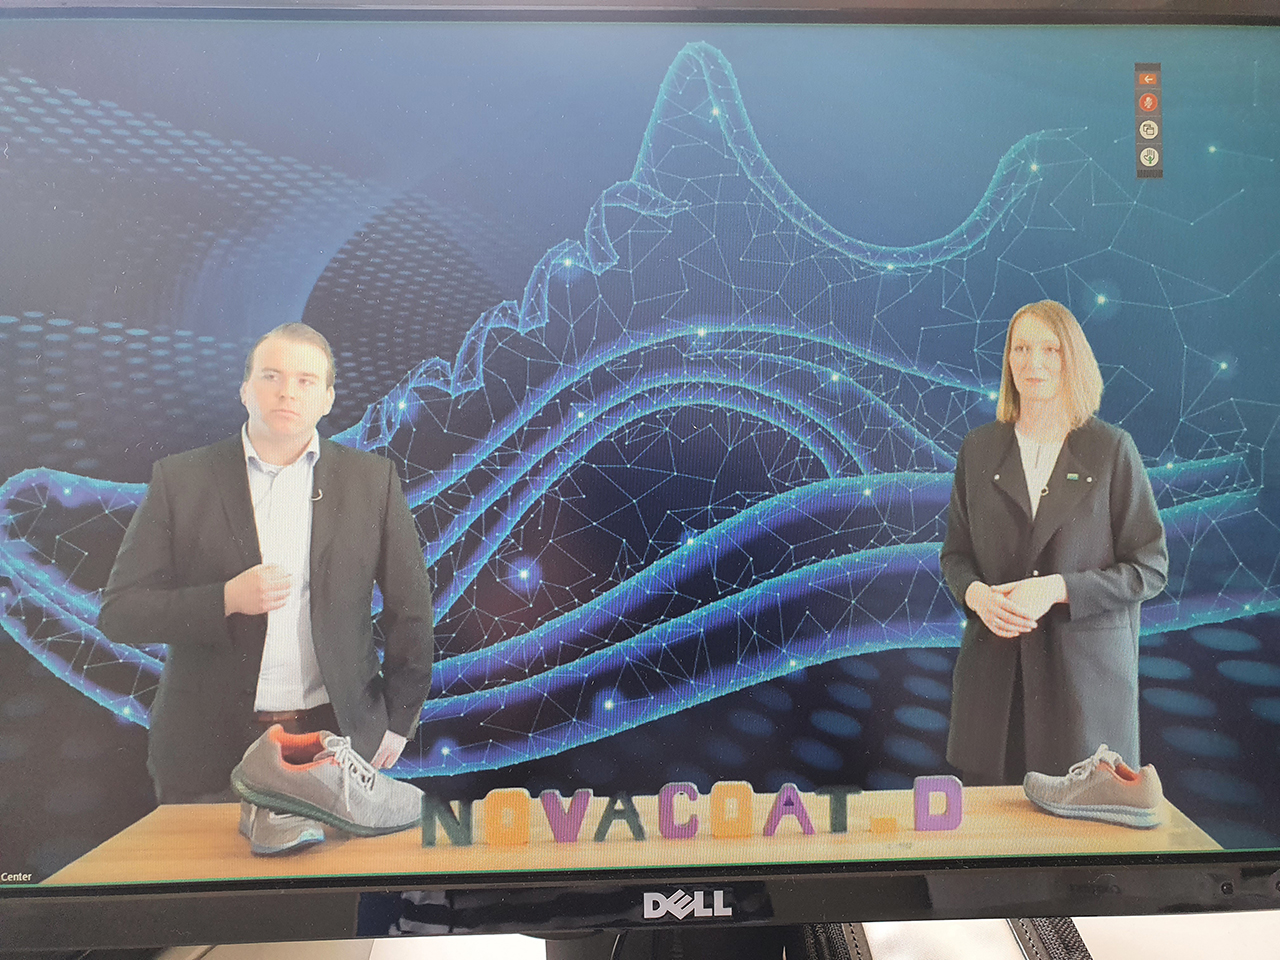 Virtual product launch of NovaCoat-D with Tim Claus Bardenhagen (Desma) and Dr. Karin Reuter (BASF). (Source: sw)